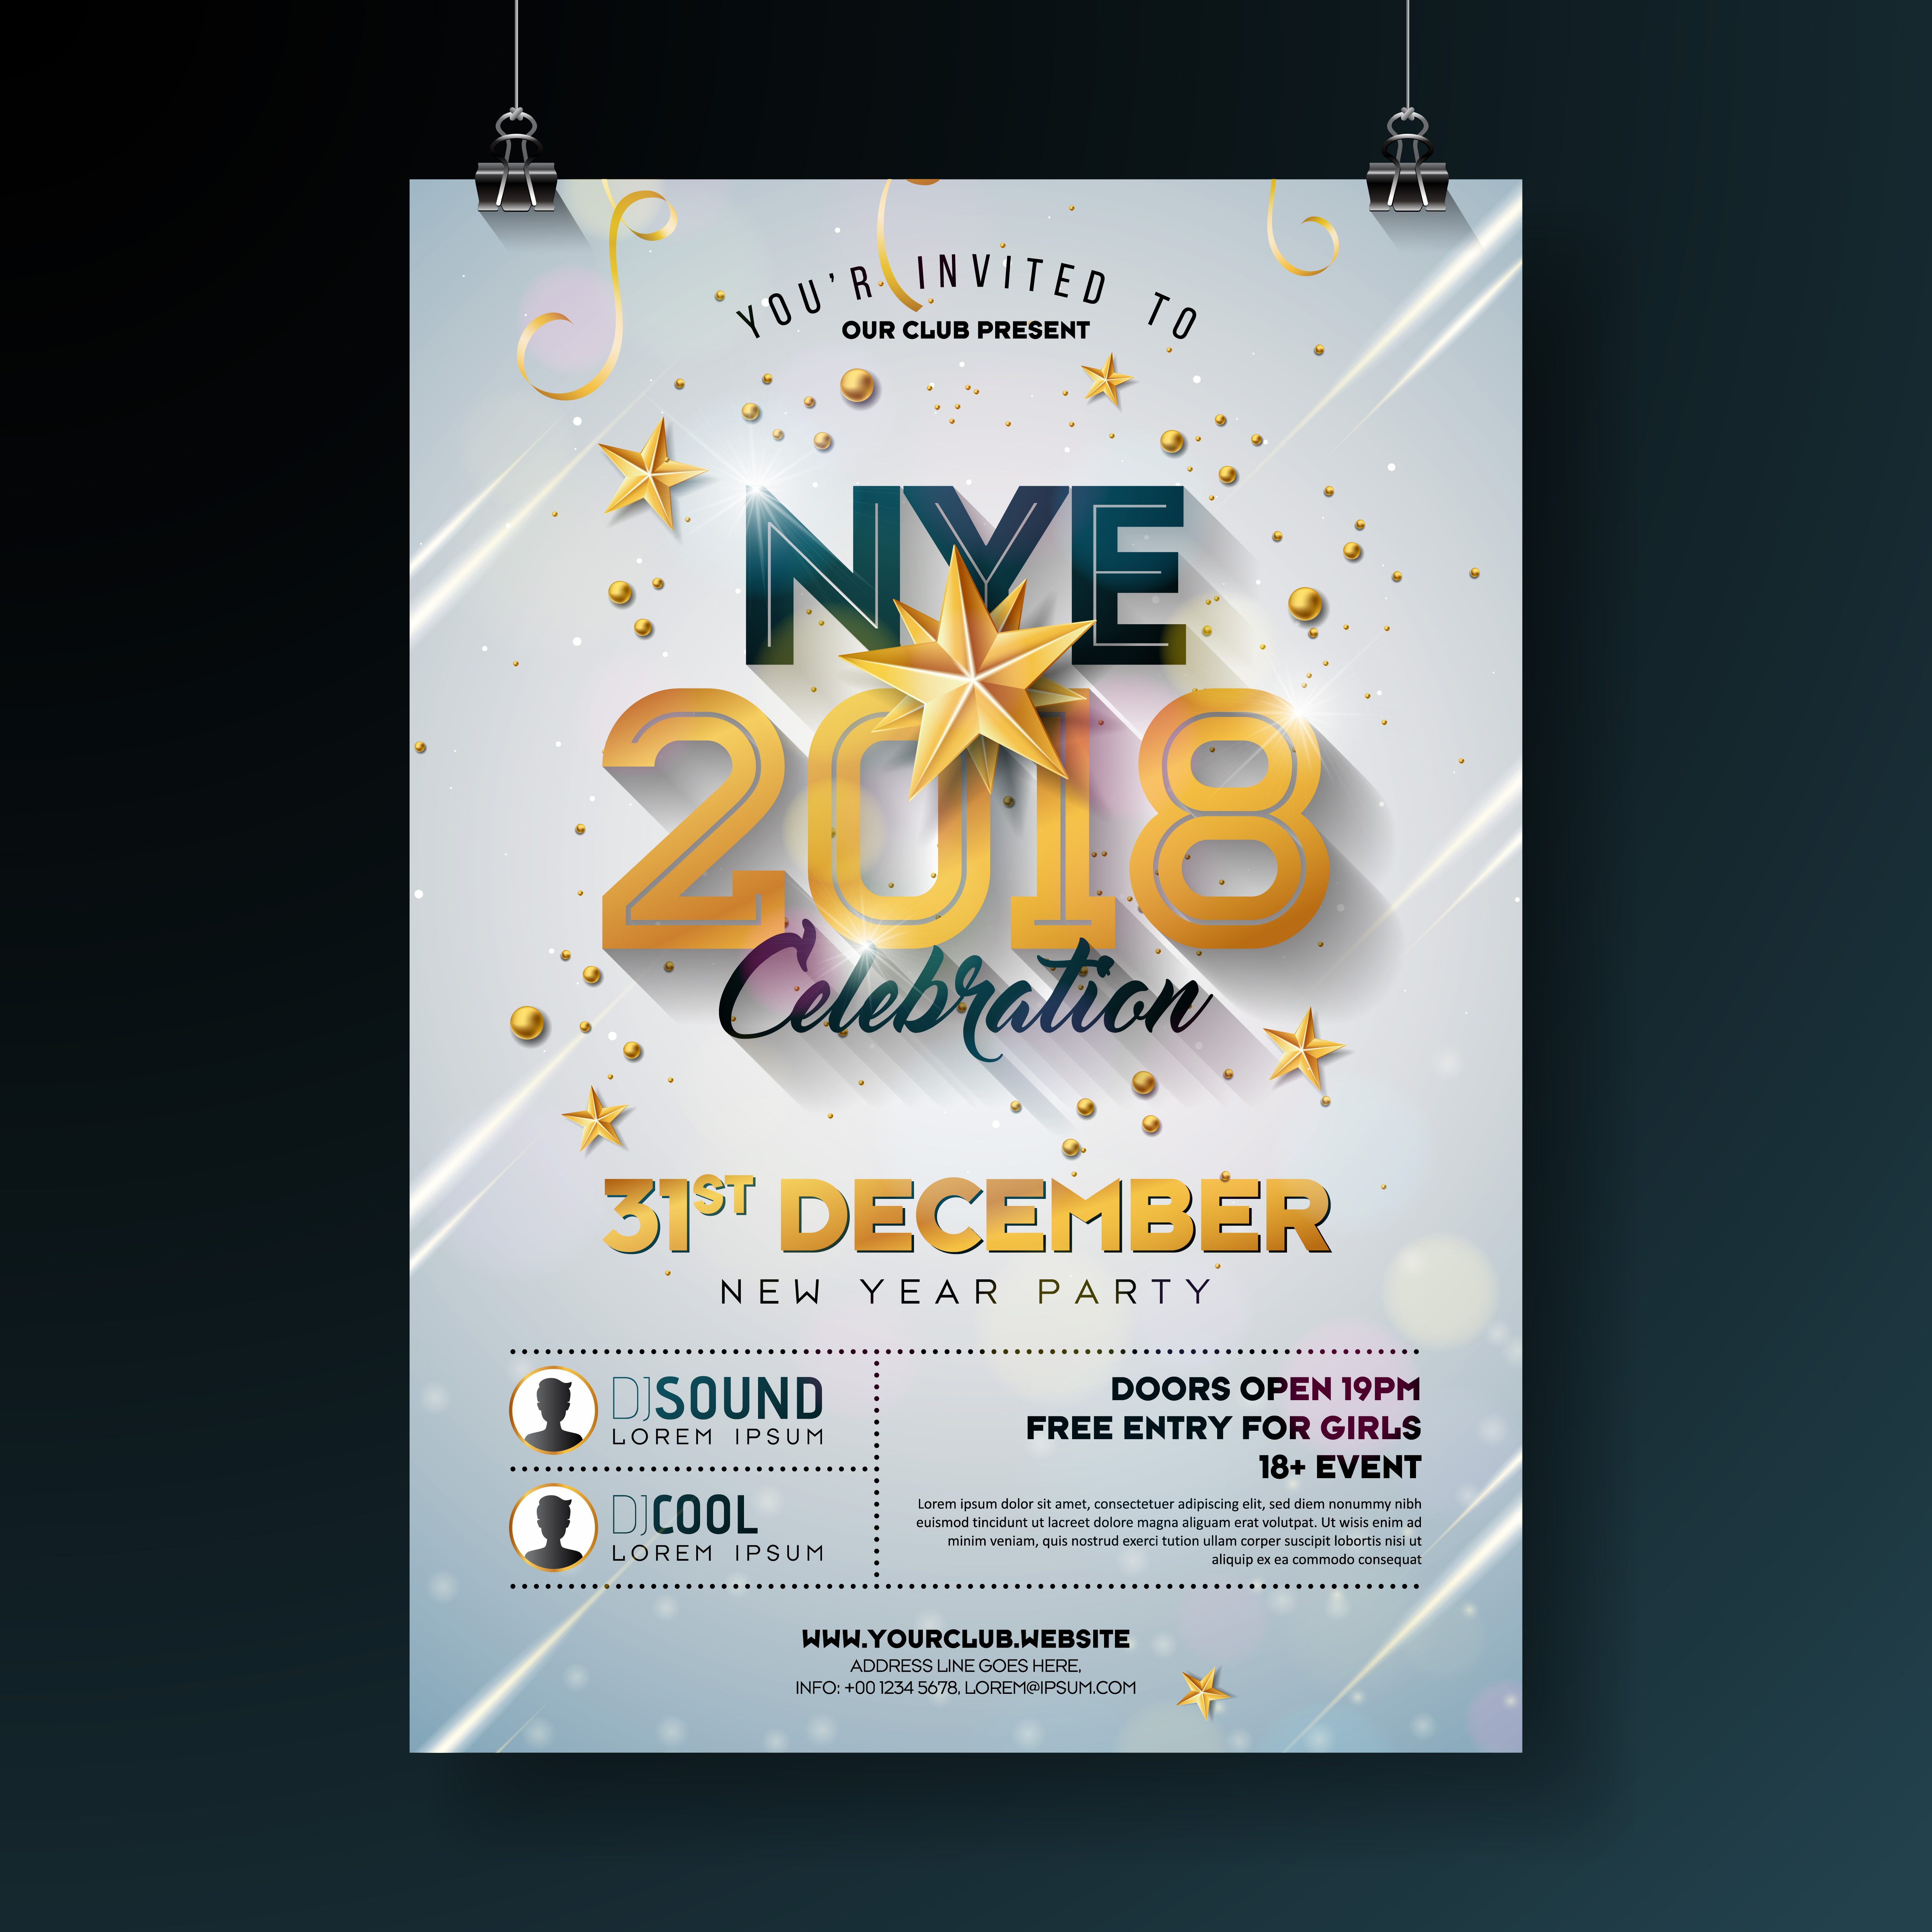 2018 new year party celebration poster template illustration with shiny gold number on white